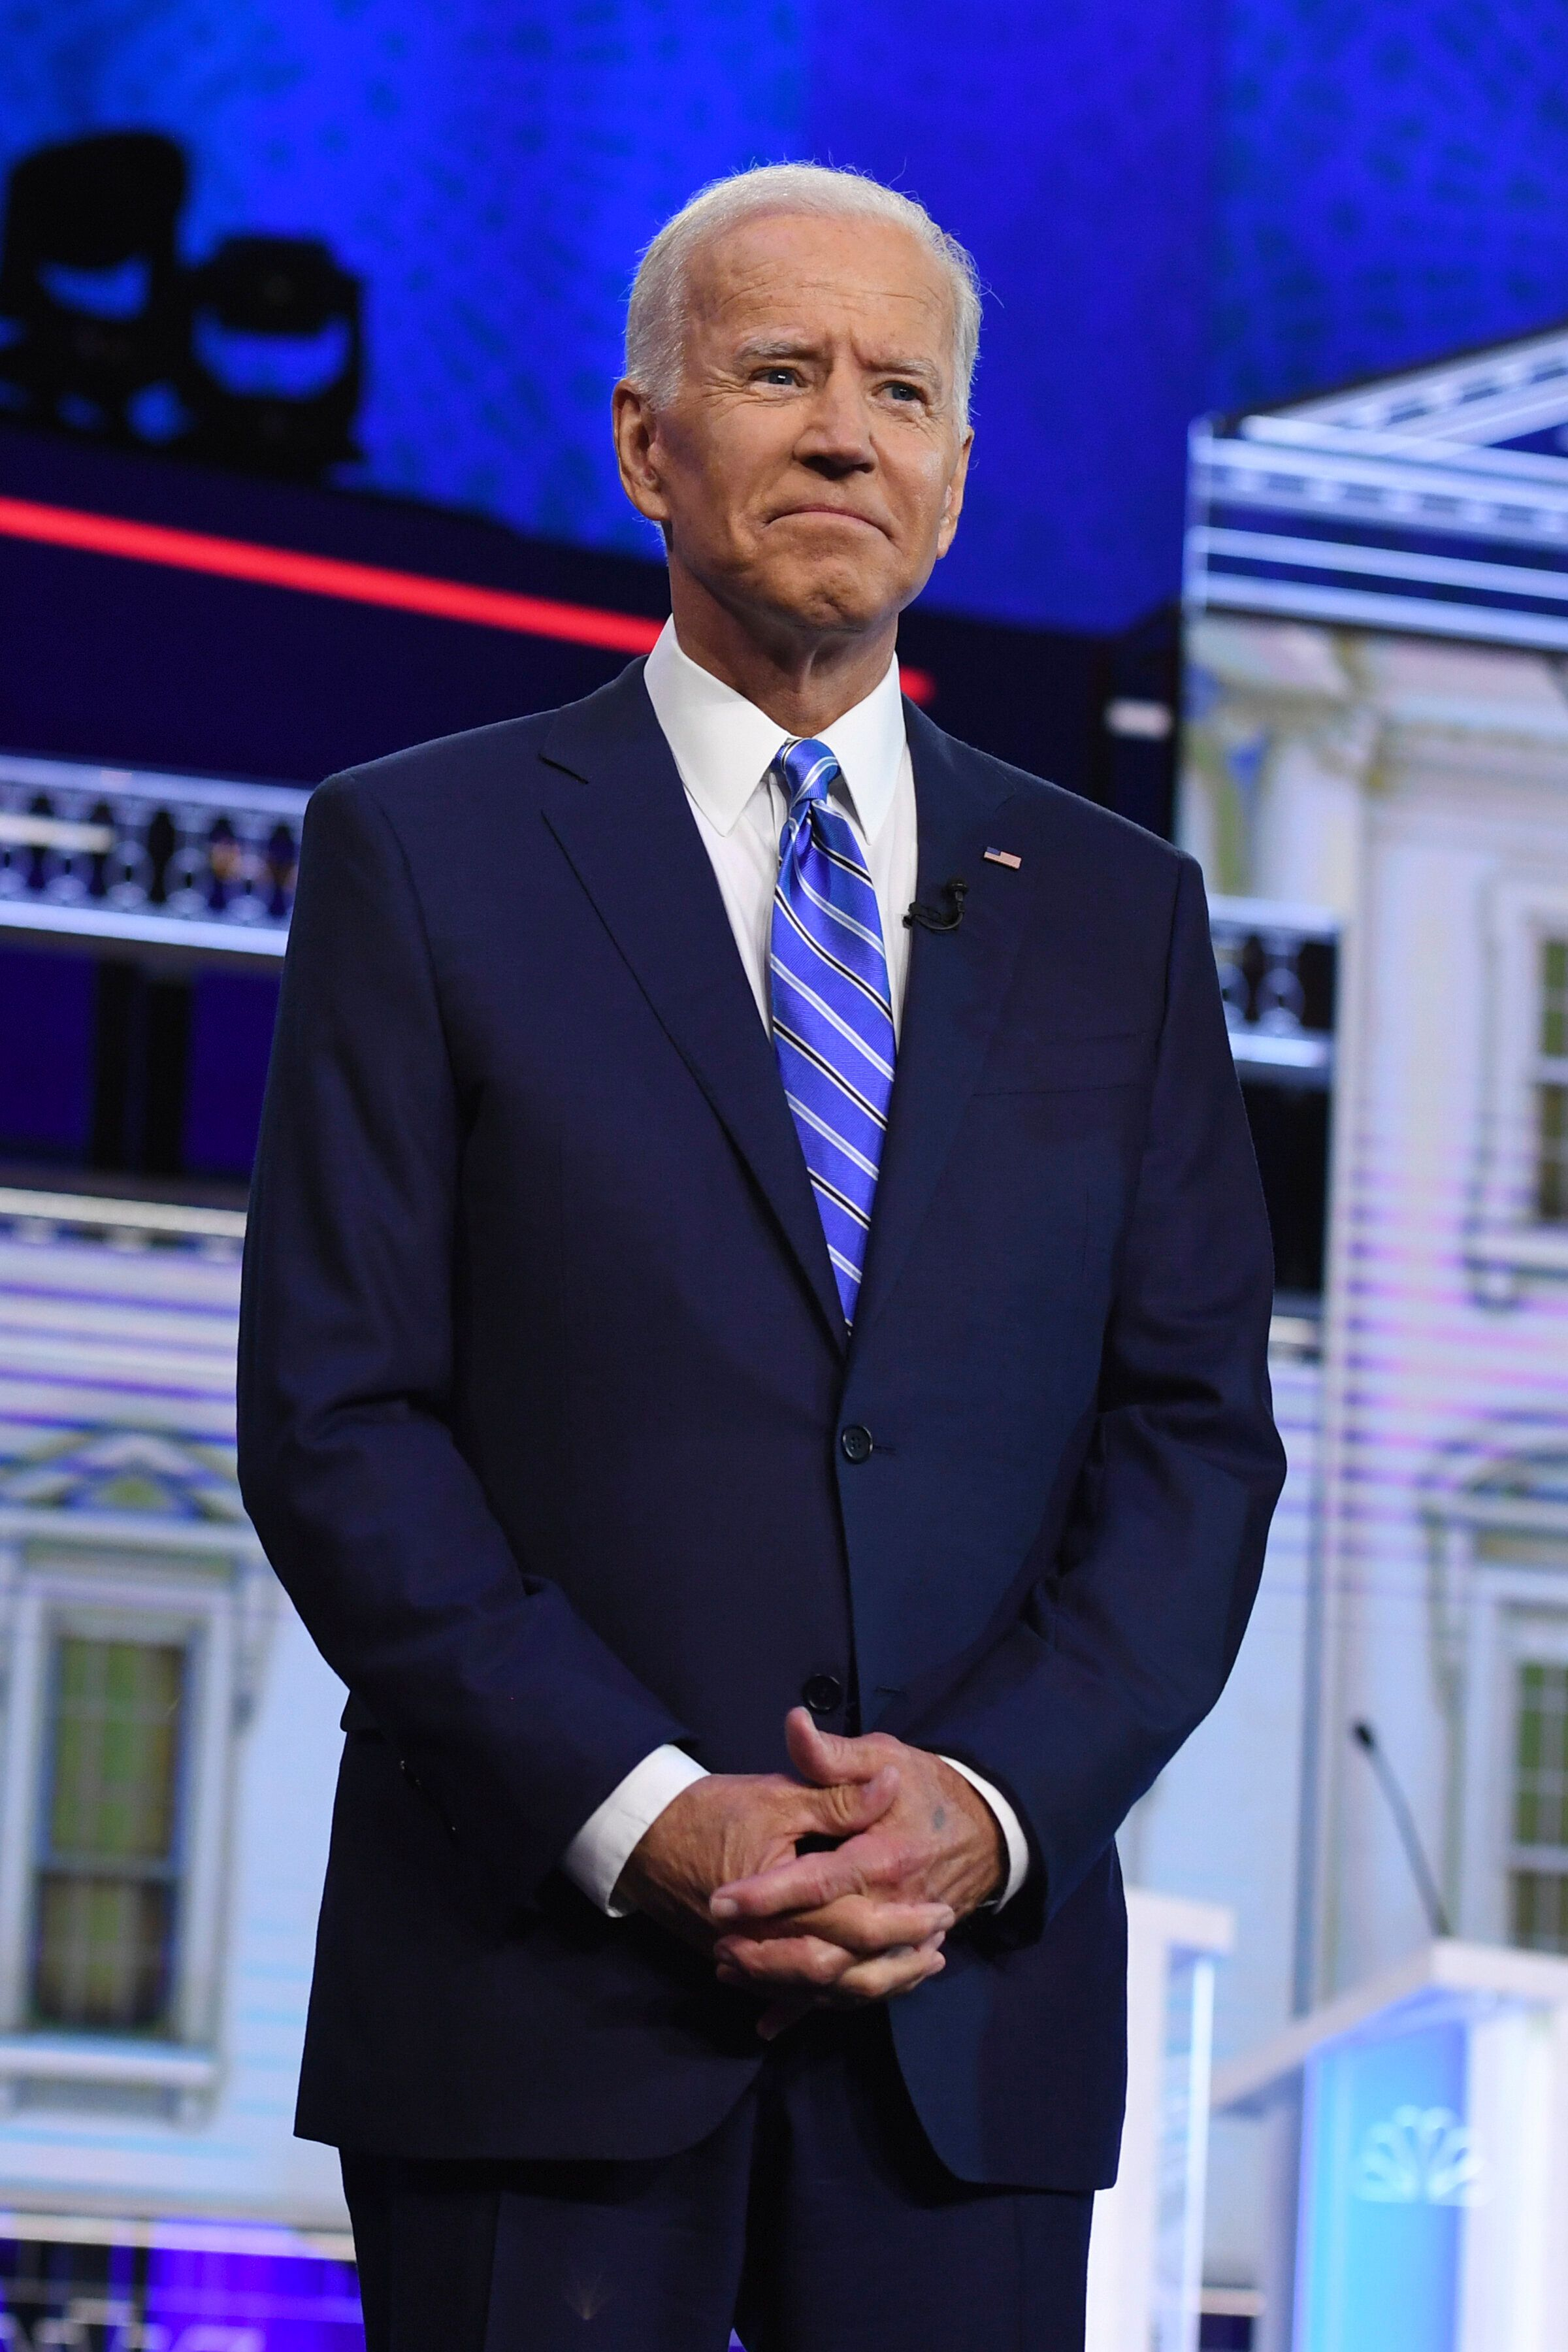 Joe Biden Loses Support From Top Donor After